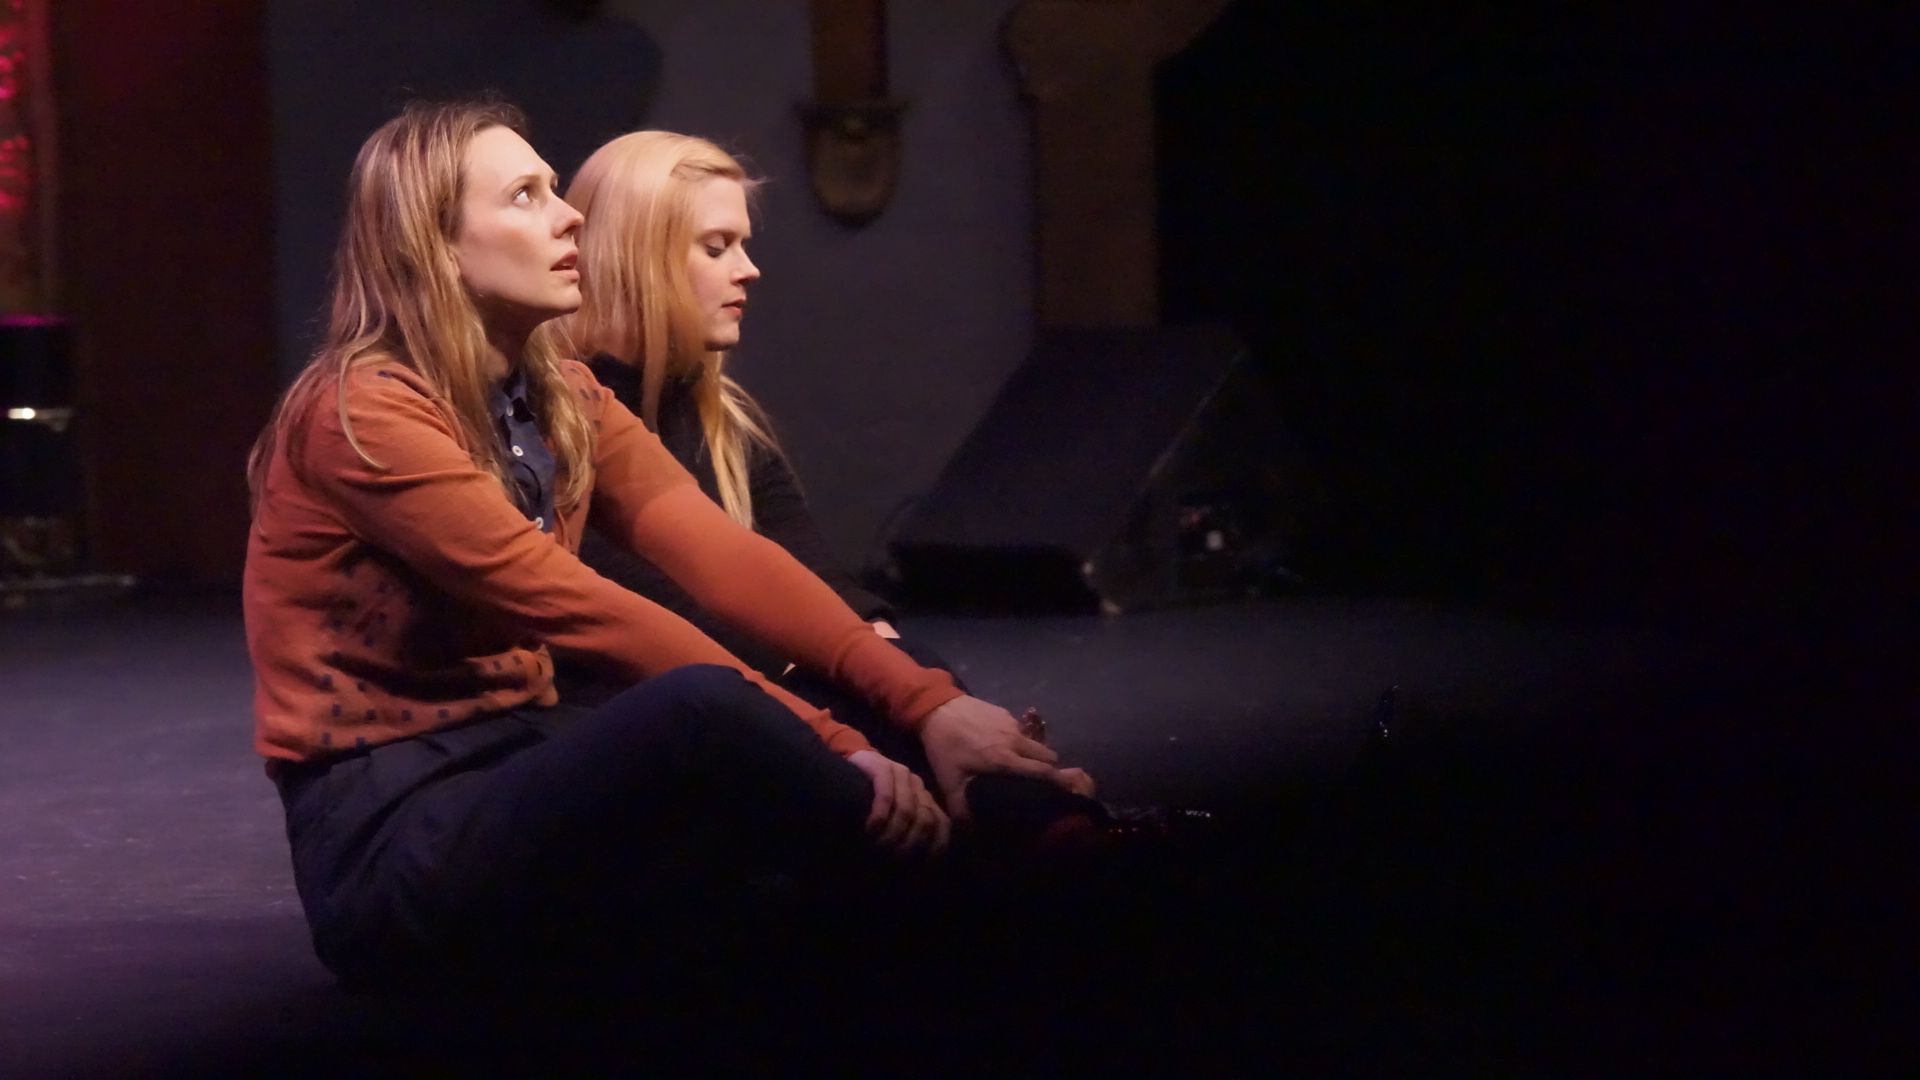 Jessica Makinson and Janet Varney at Theme Park at SF Sketchfest 2016. Photo by Steve Agee.